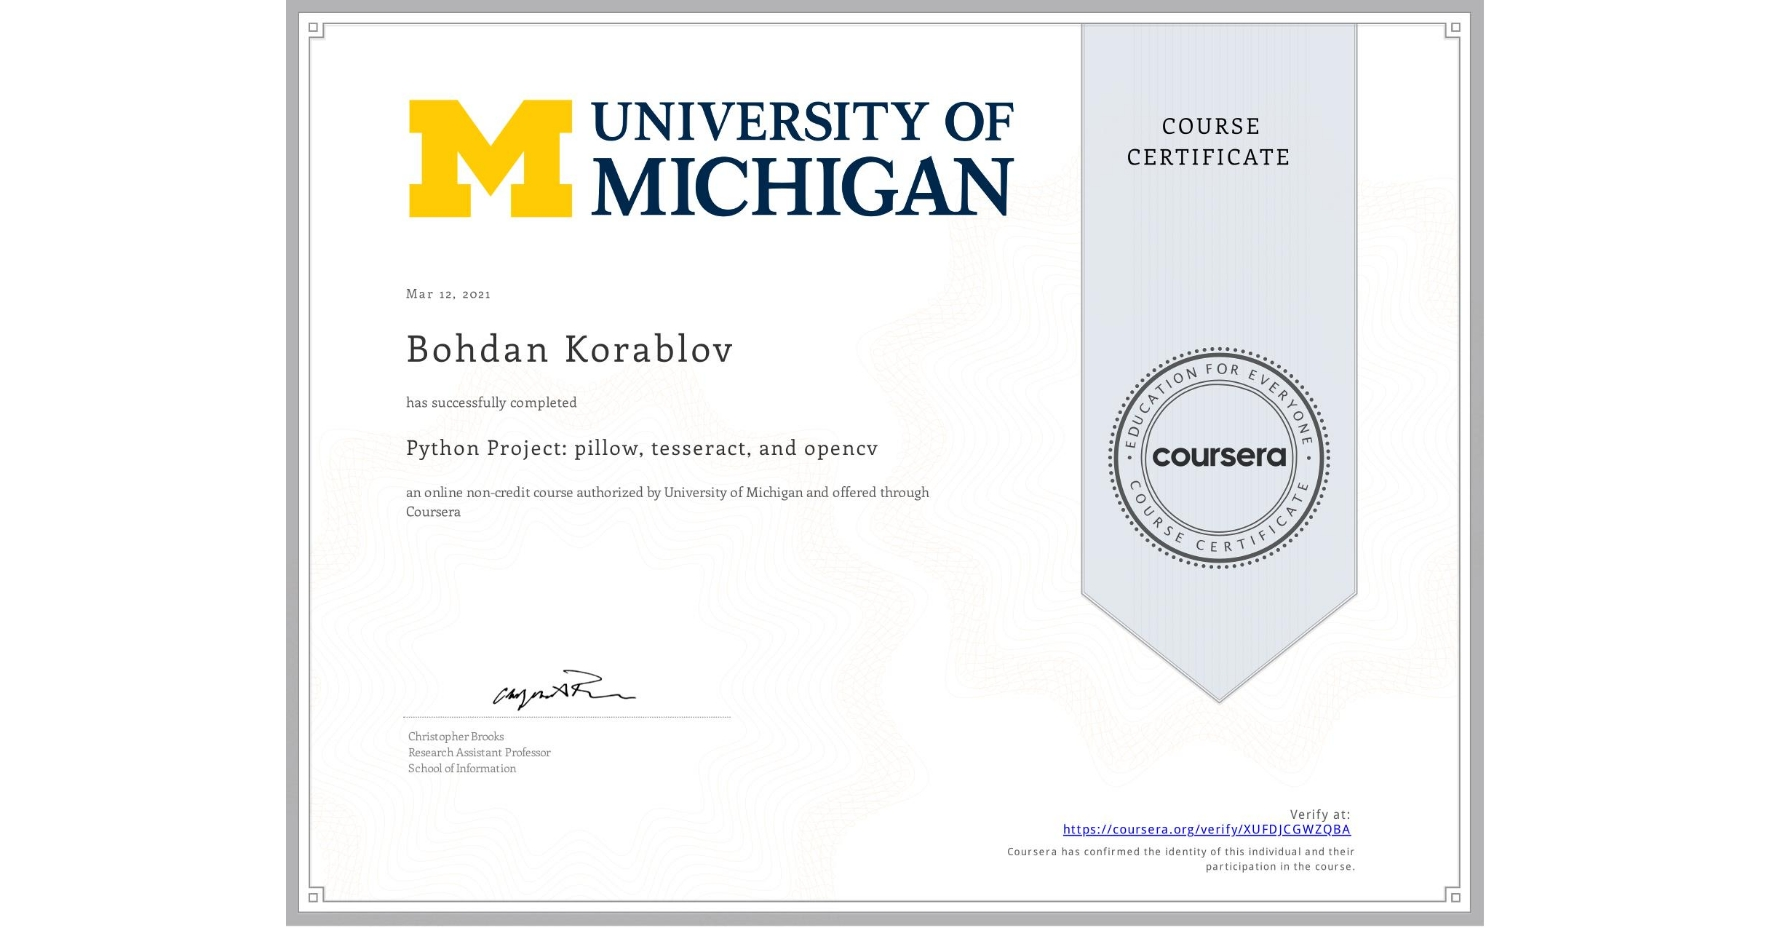 View certificate for Bohdan Korablov, Python Project: pillow, tesseract, and opencv, an online non-credit course authorized by University of Michigan and offered through Coursera